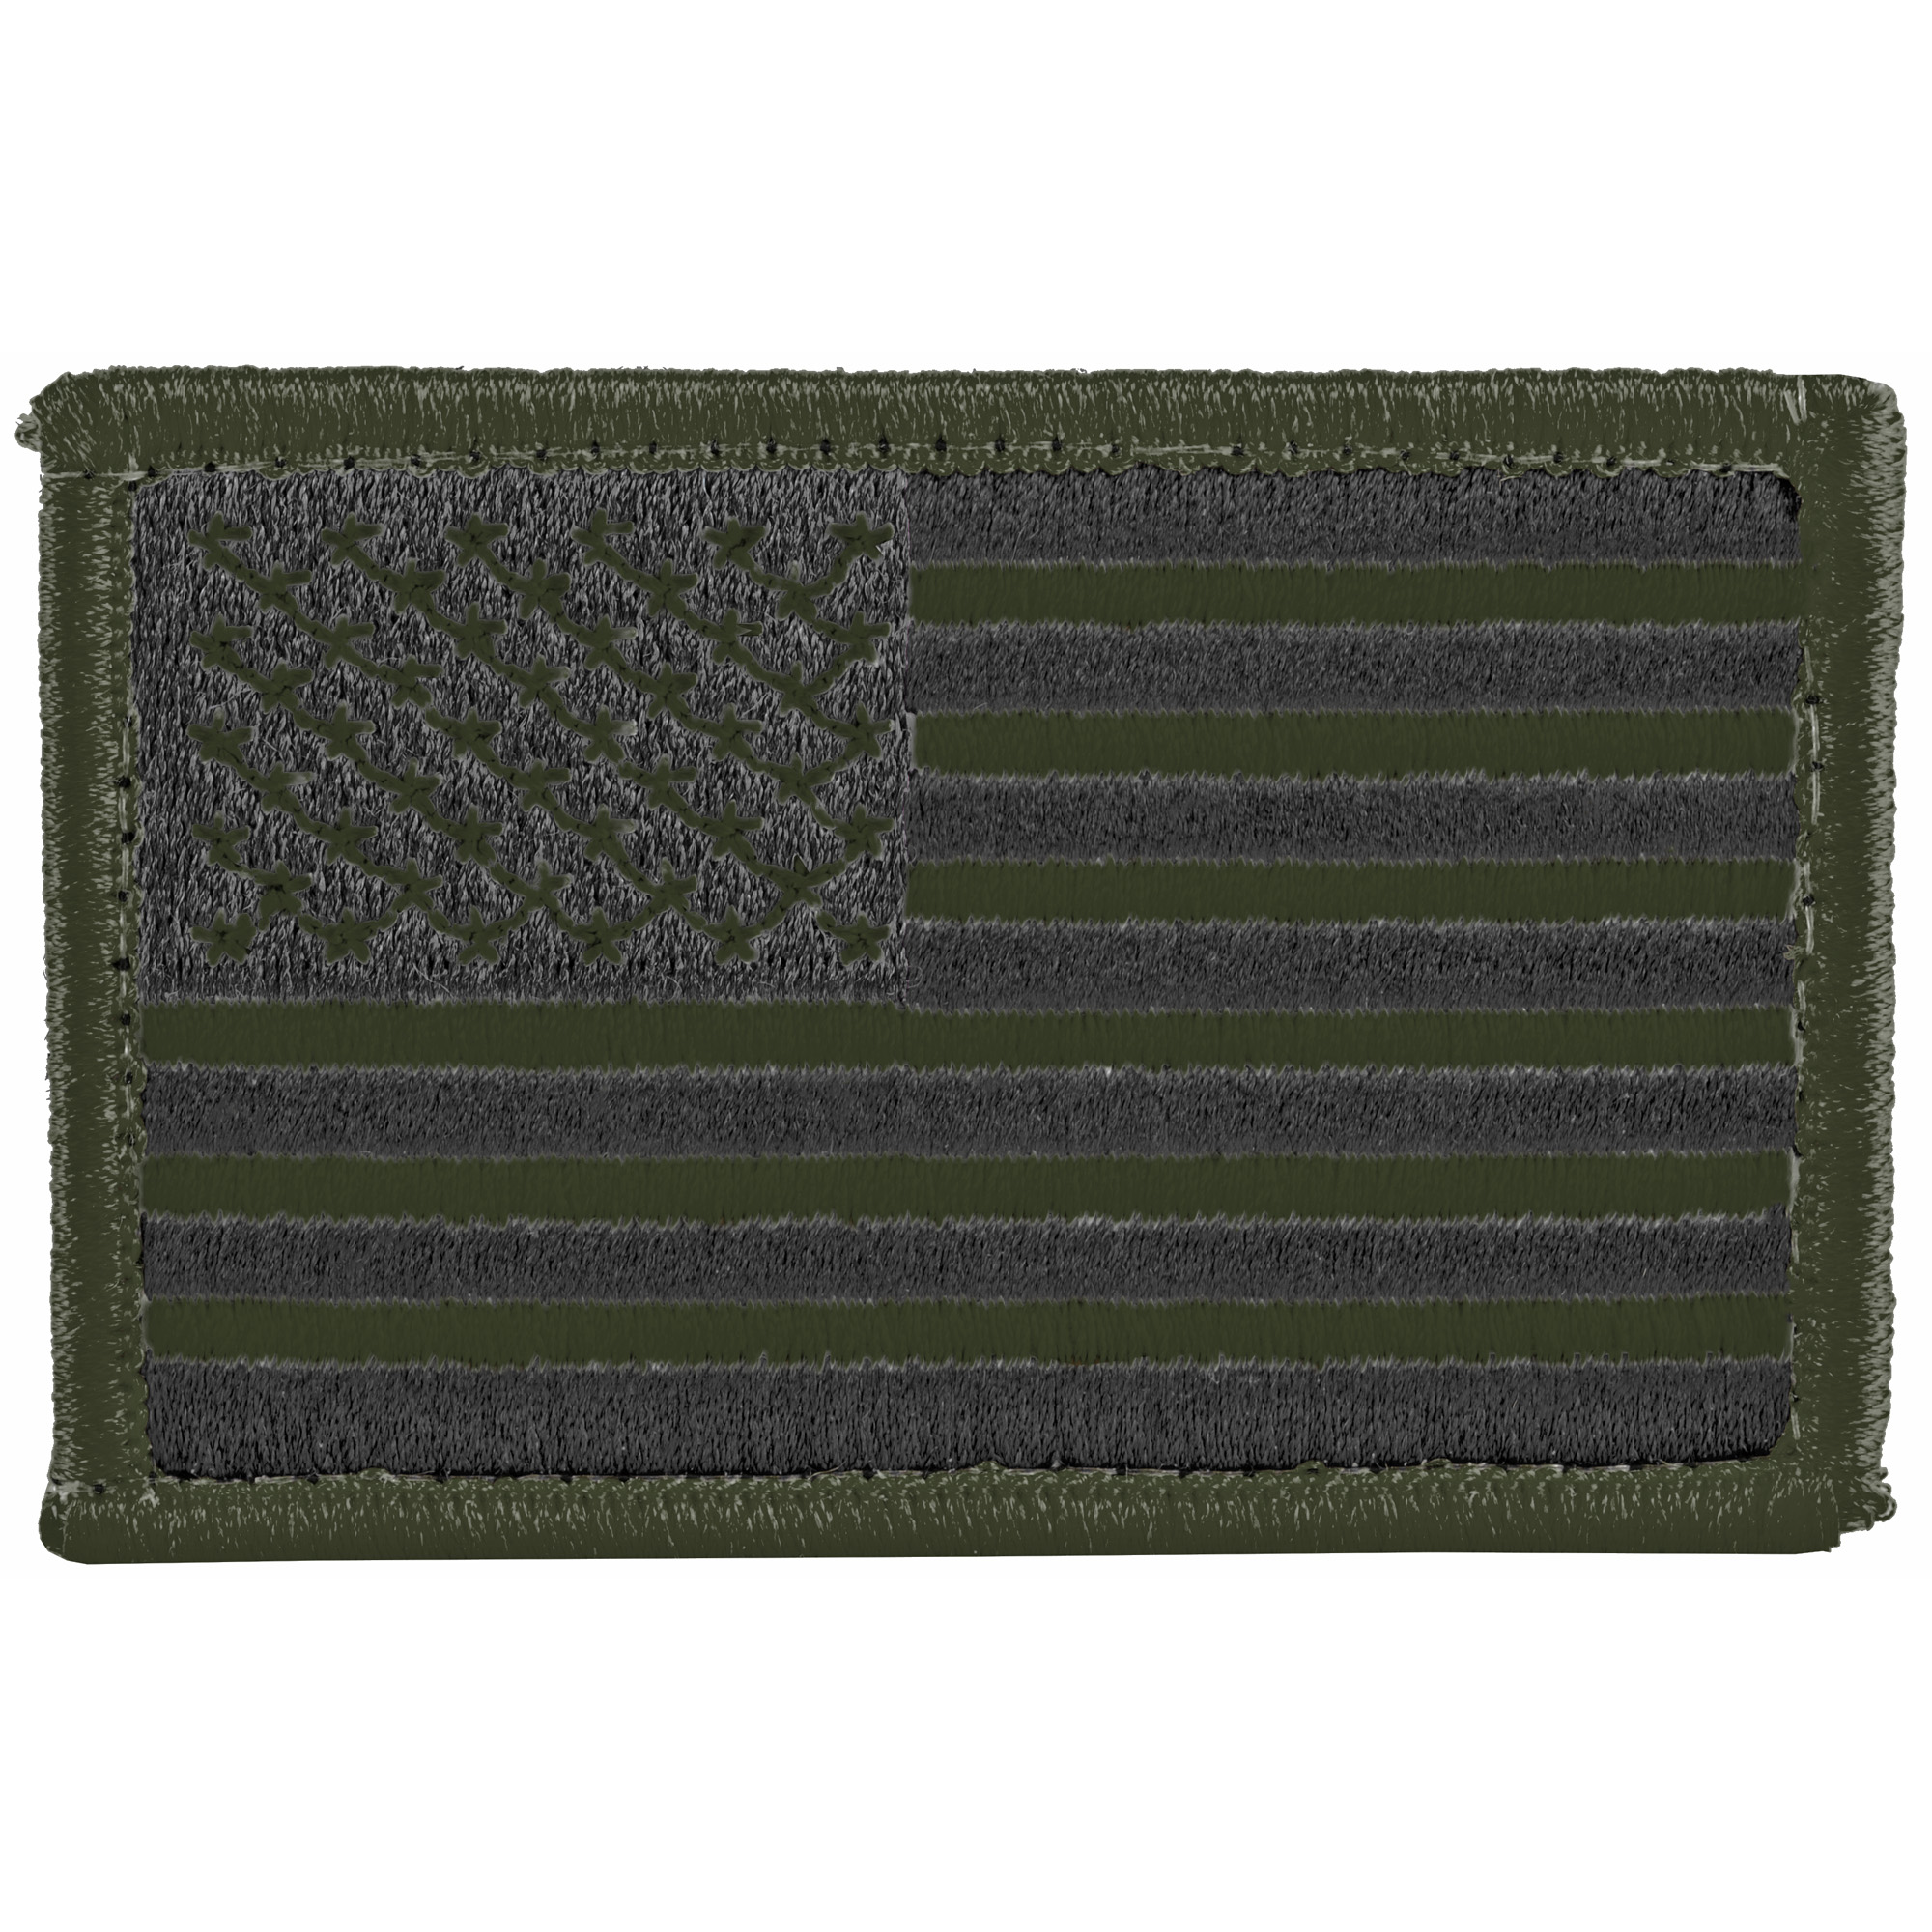 Bh Patch American Flag Wh&l Od/blk